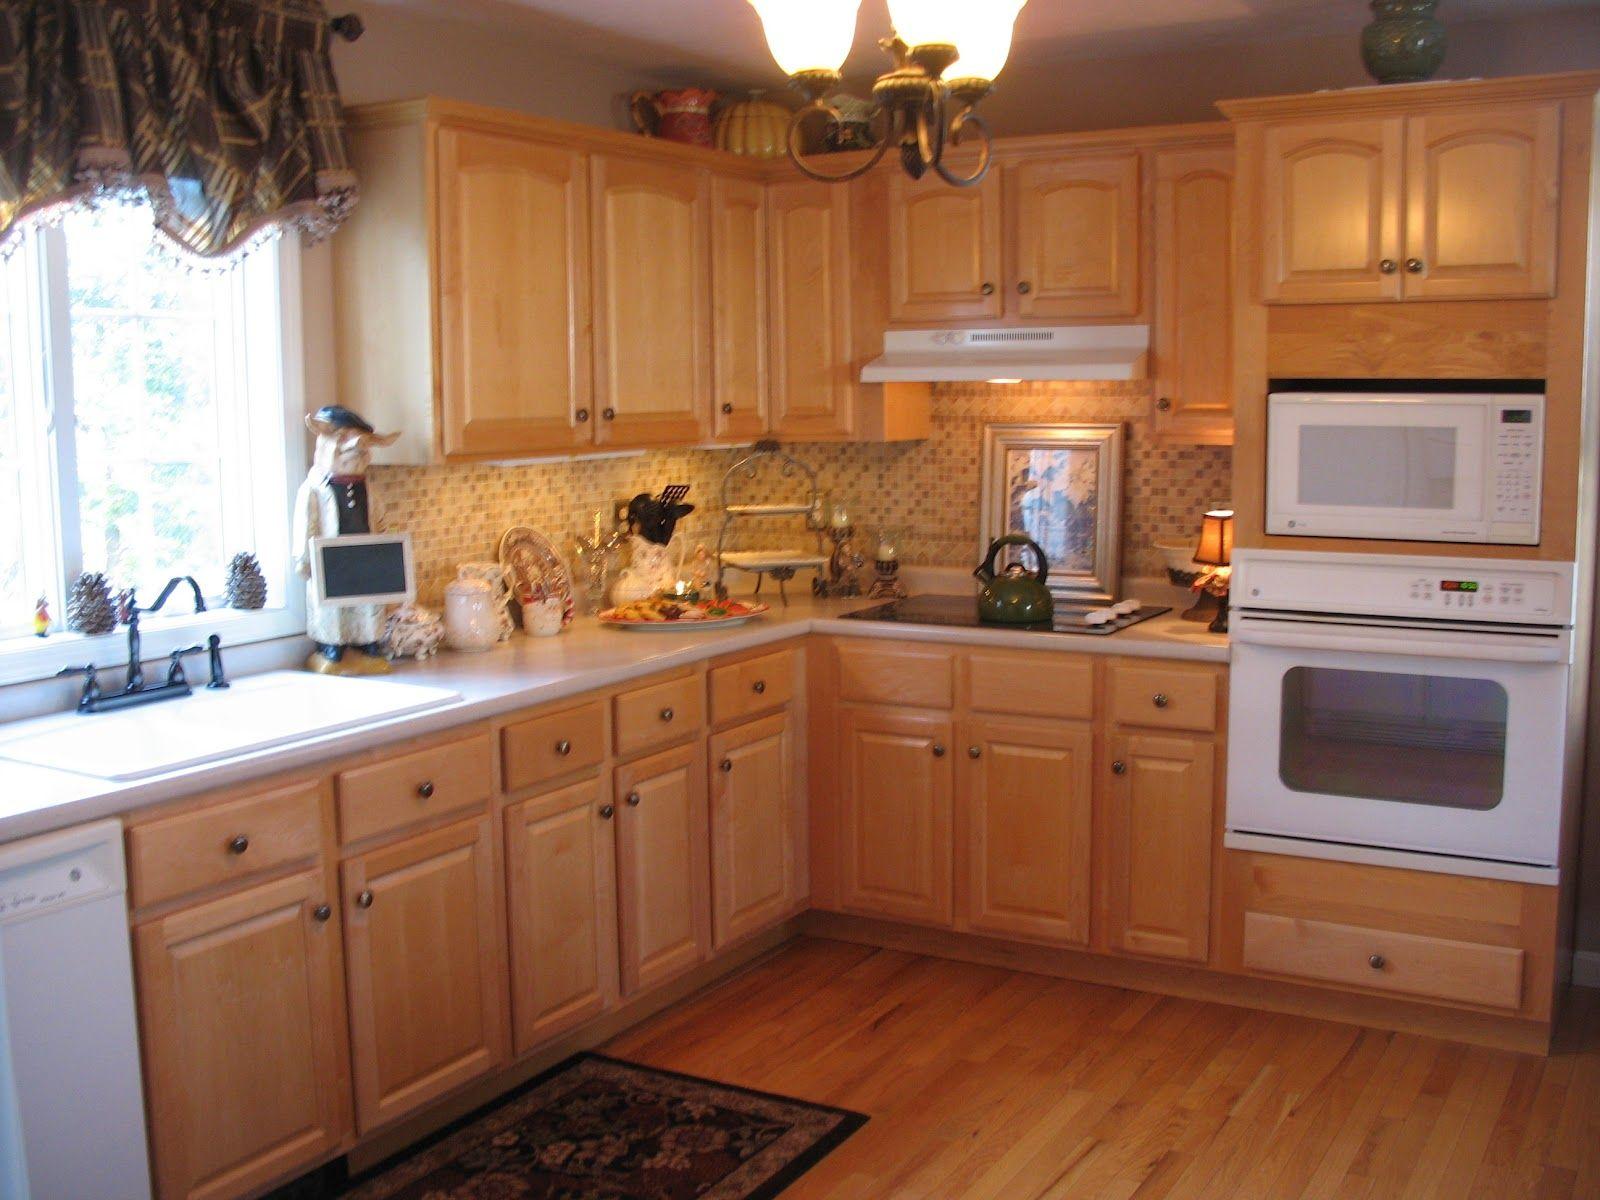 Kitchen kitchen colors with dark brown cabinets backsplash